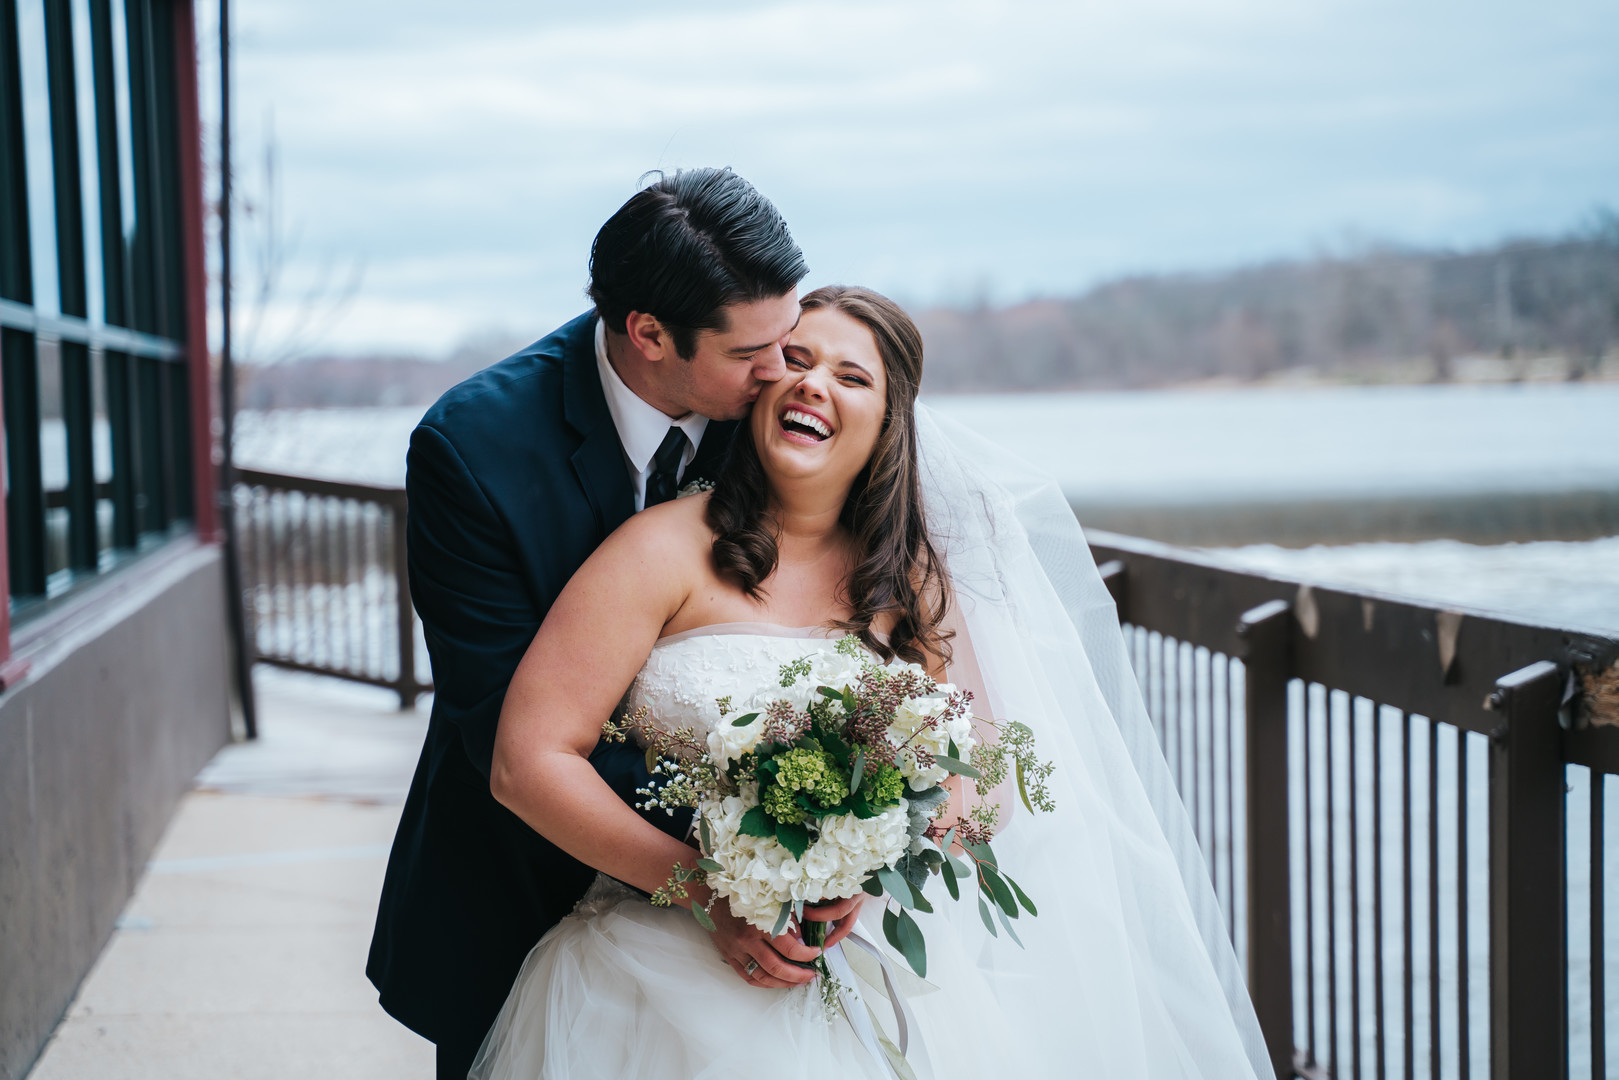 Beautiful Illinois wedding at Riverside Receptions captured by Windy City Production. See more wedding ideas at CHItheeWED.com!